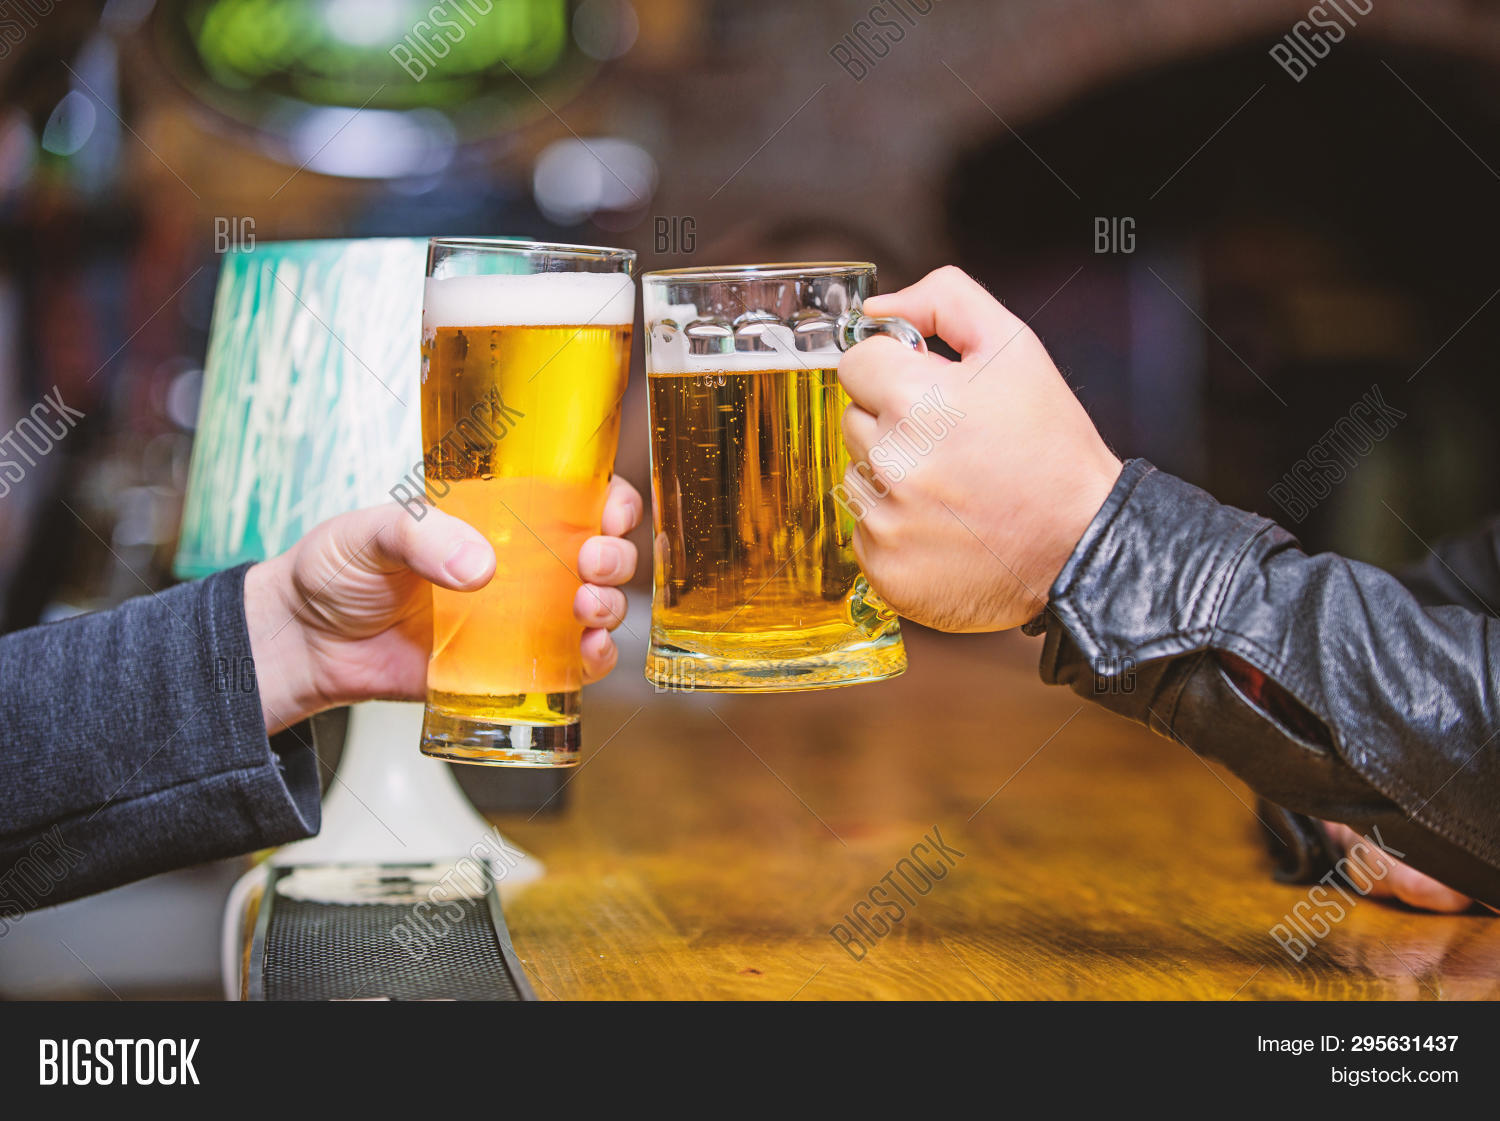 alcohol,alcoholic,ale,background,bar,bartender,beer,beverage,blurred,bubble,cheers,client,cold,concept,counter,craft,defocused,draft,draught,drink,filled,foam,fresh,friday,friends,glass,golden,keg,lager,leisure,light,liquid,mug,pint,pub,refreshment,restaurant,serving,table,tasty,tradition,visitor,wood,wooden,yellow